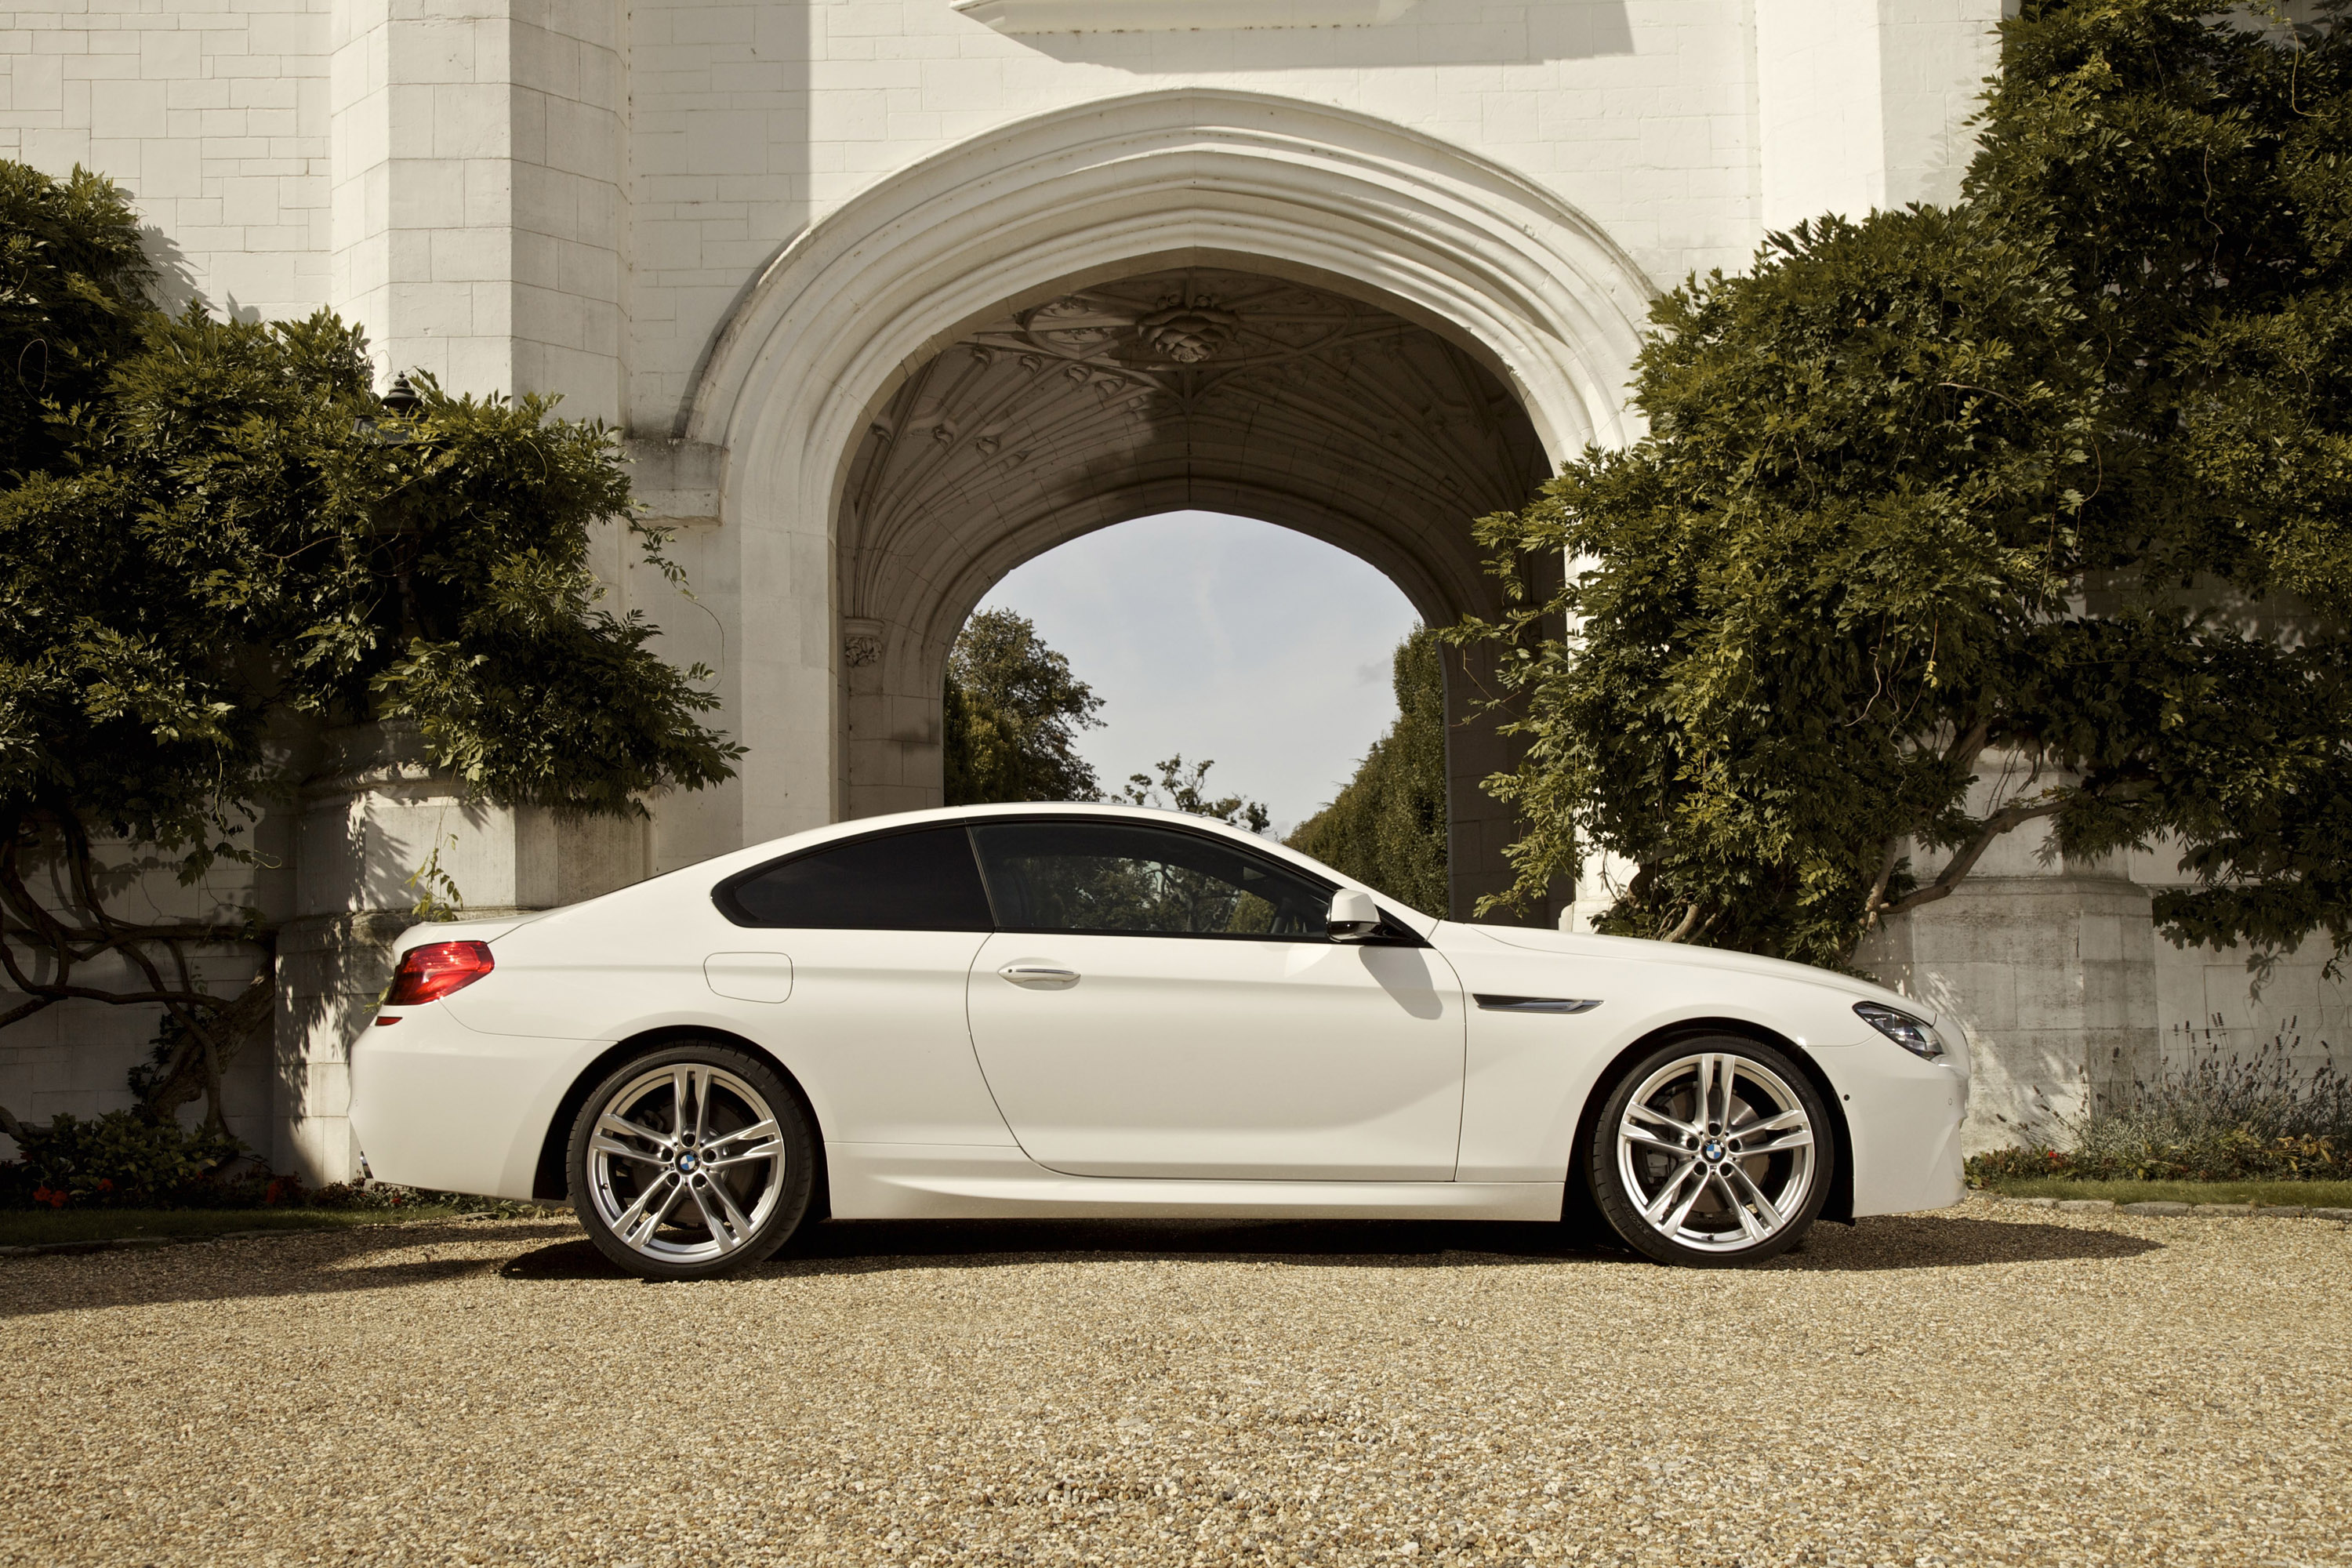 2012 BMW 6 Series Coupe - Picture 59619